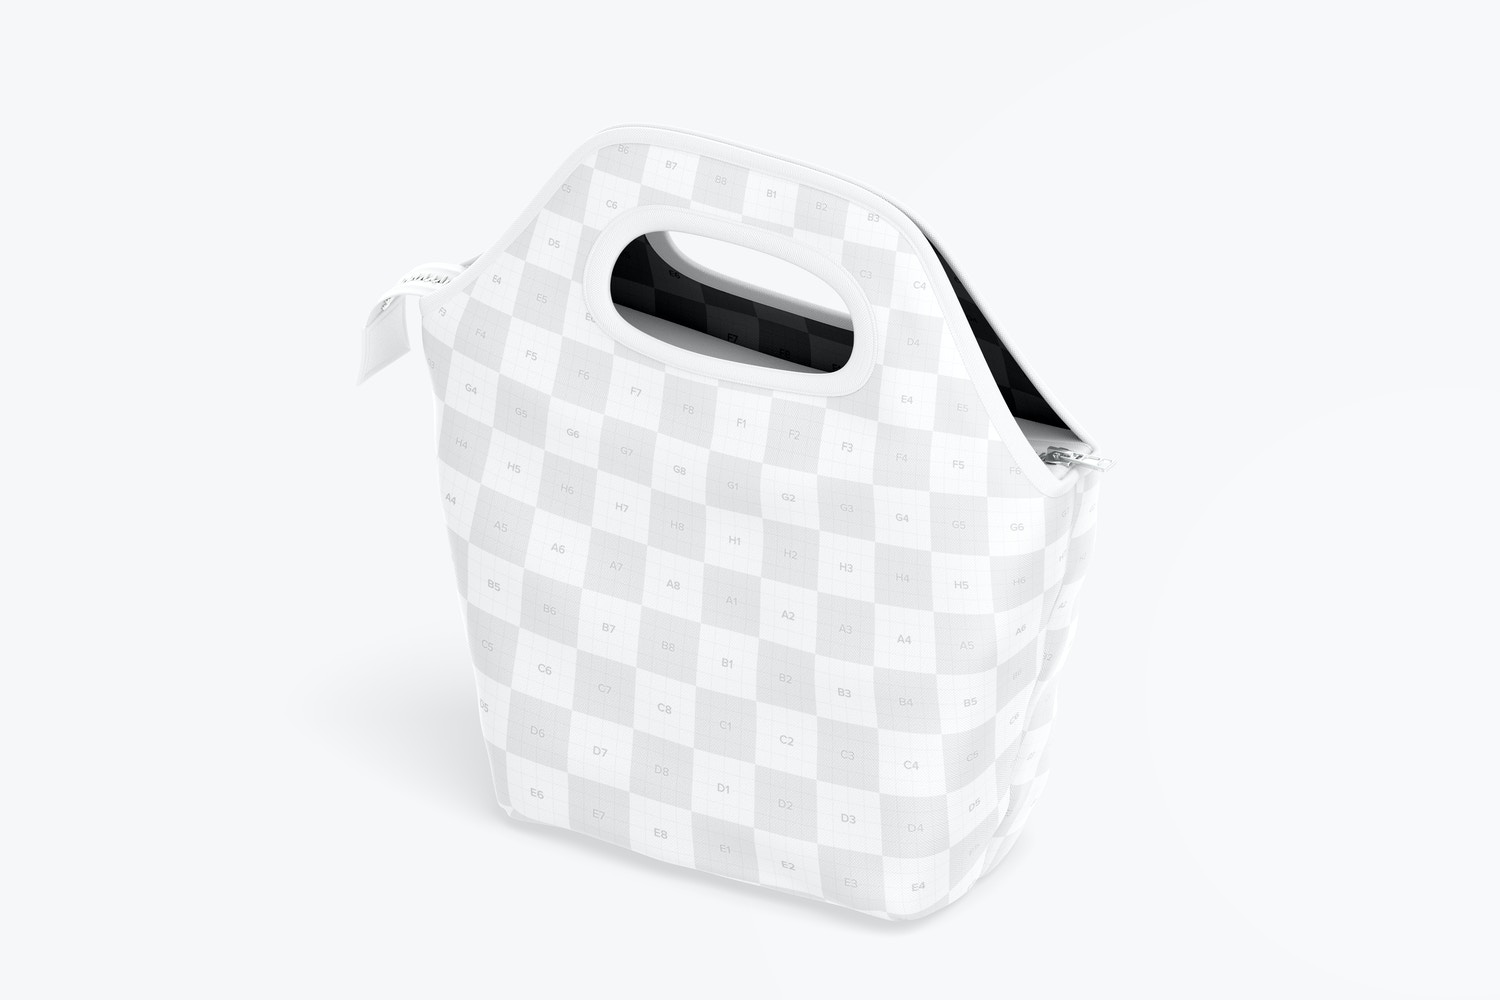 Lunch Bag Mockup, Isometric Left View